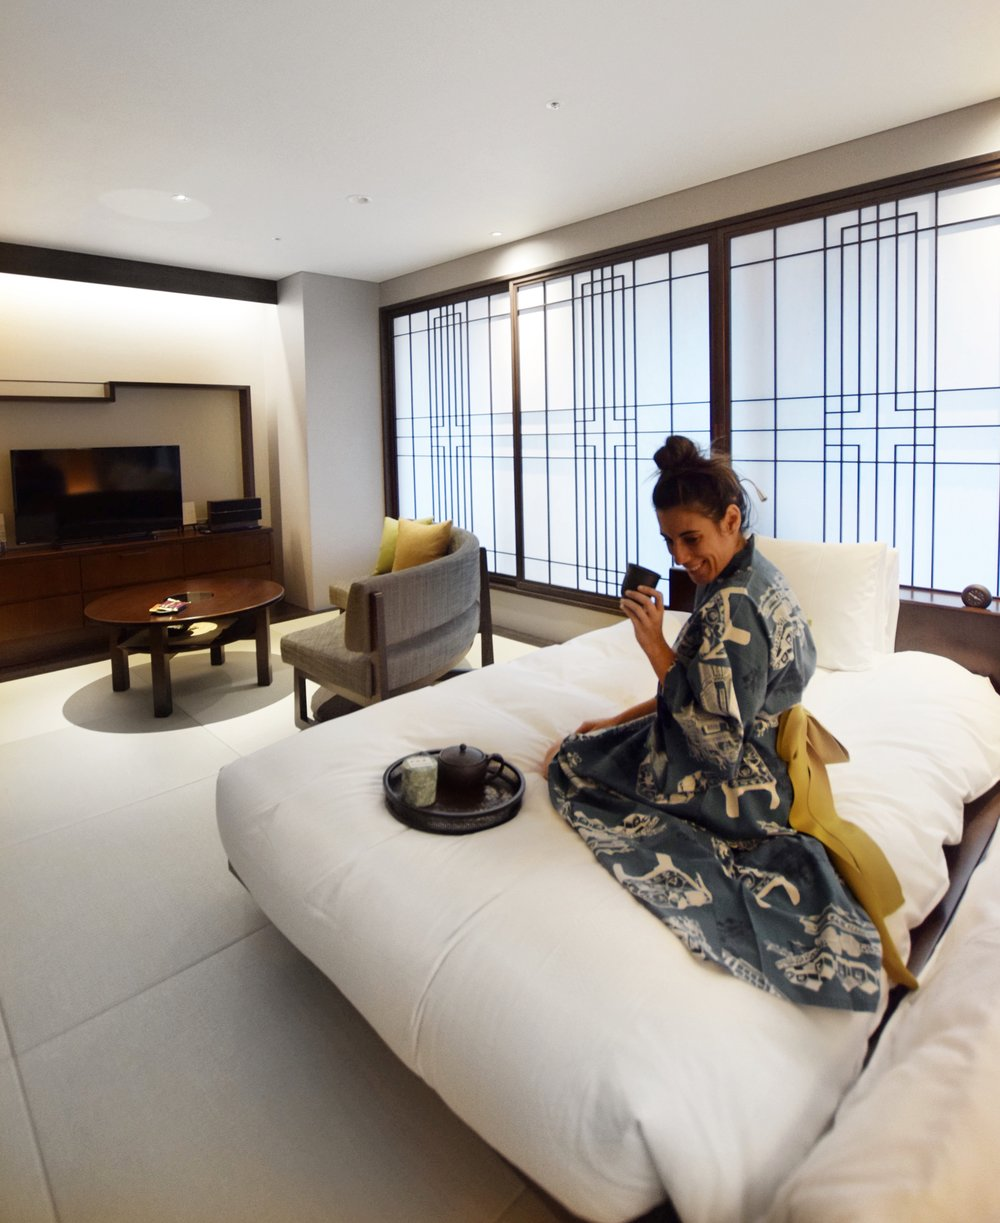 Enjoying the gorgeous room at Hotel Ryumeikan in Tokyo